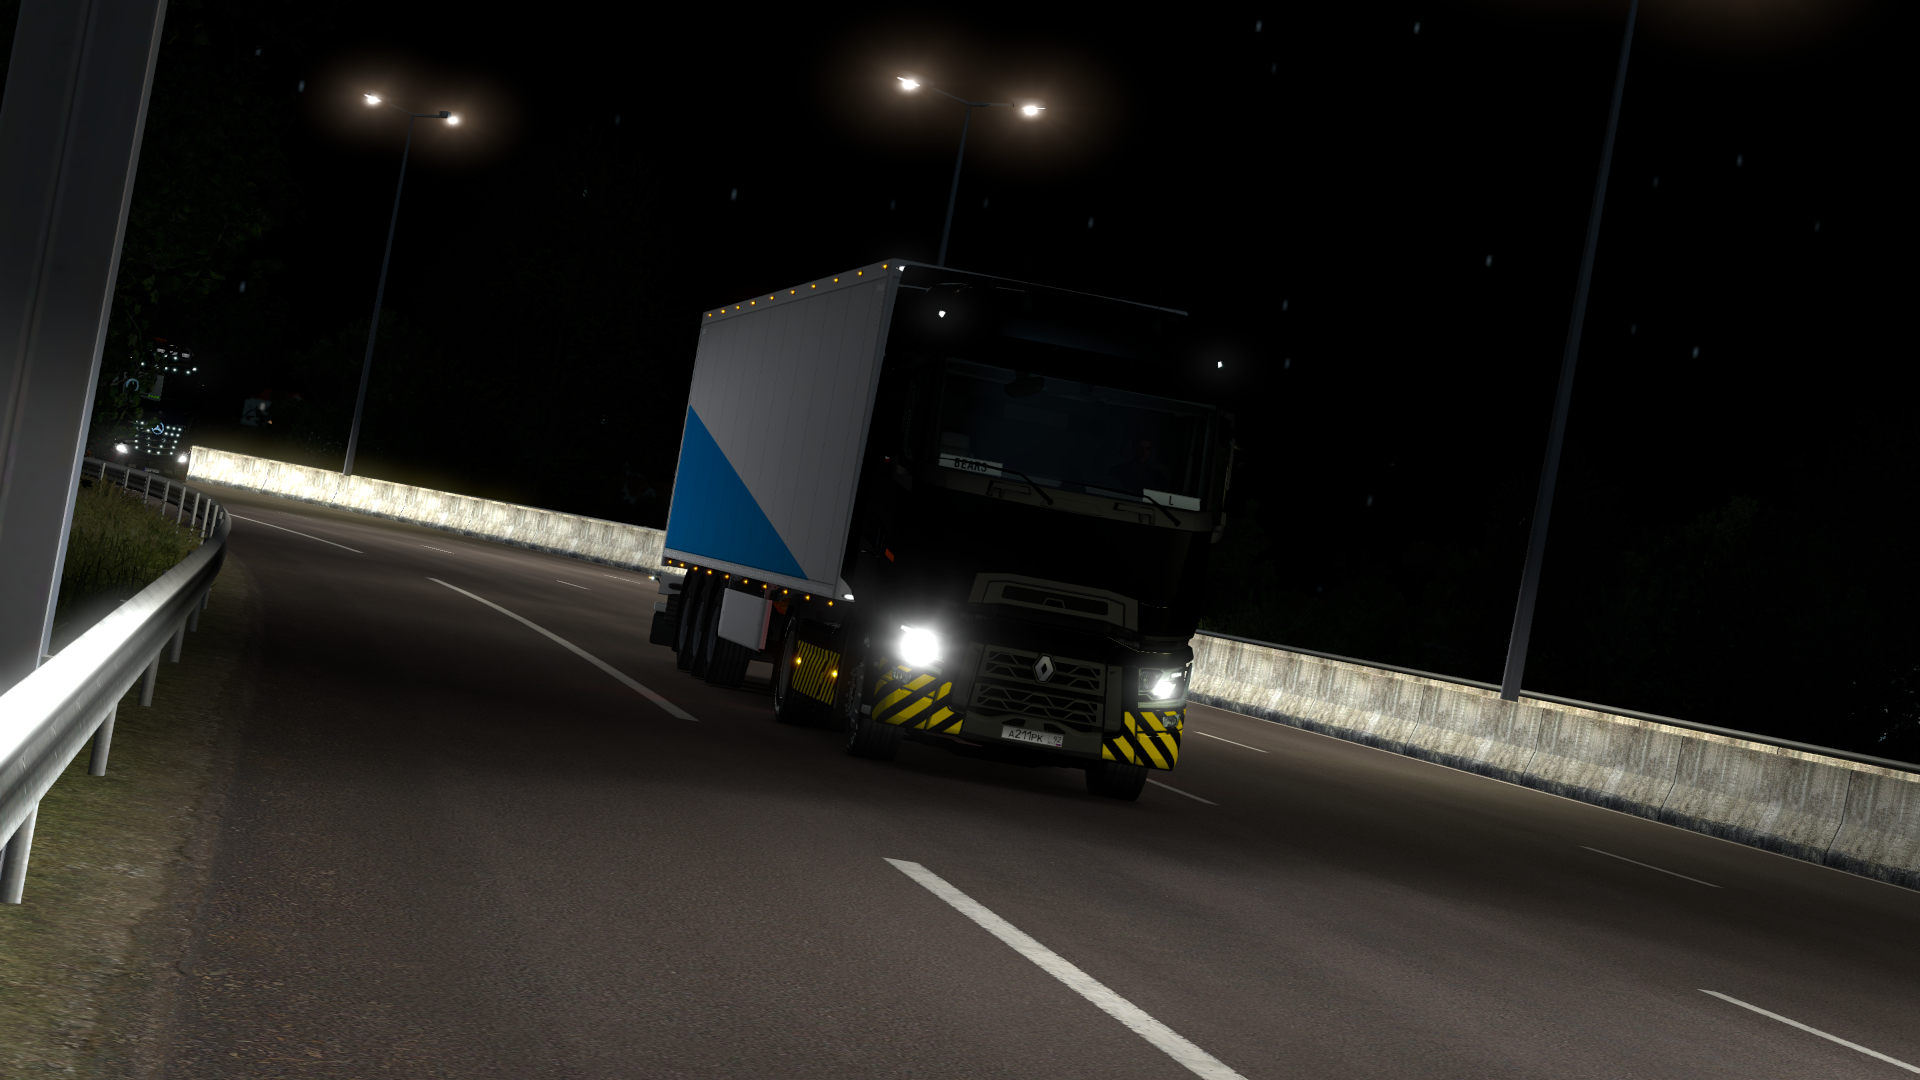 ets2_20200418_200011_00.png